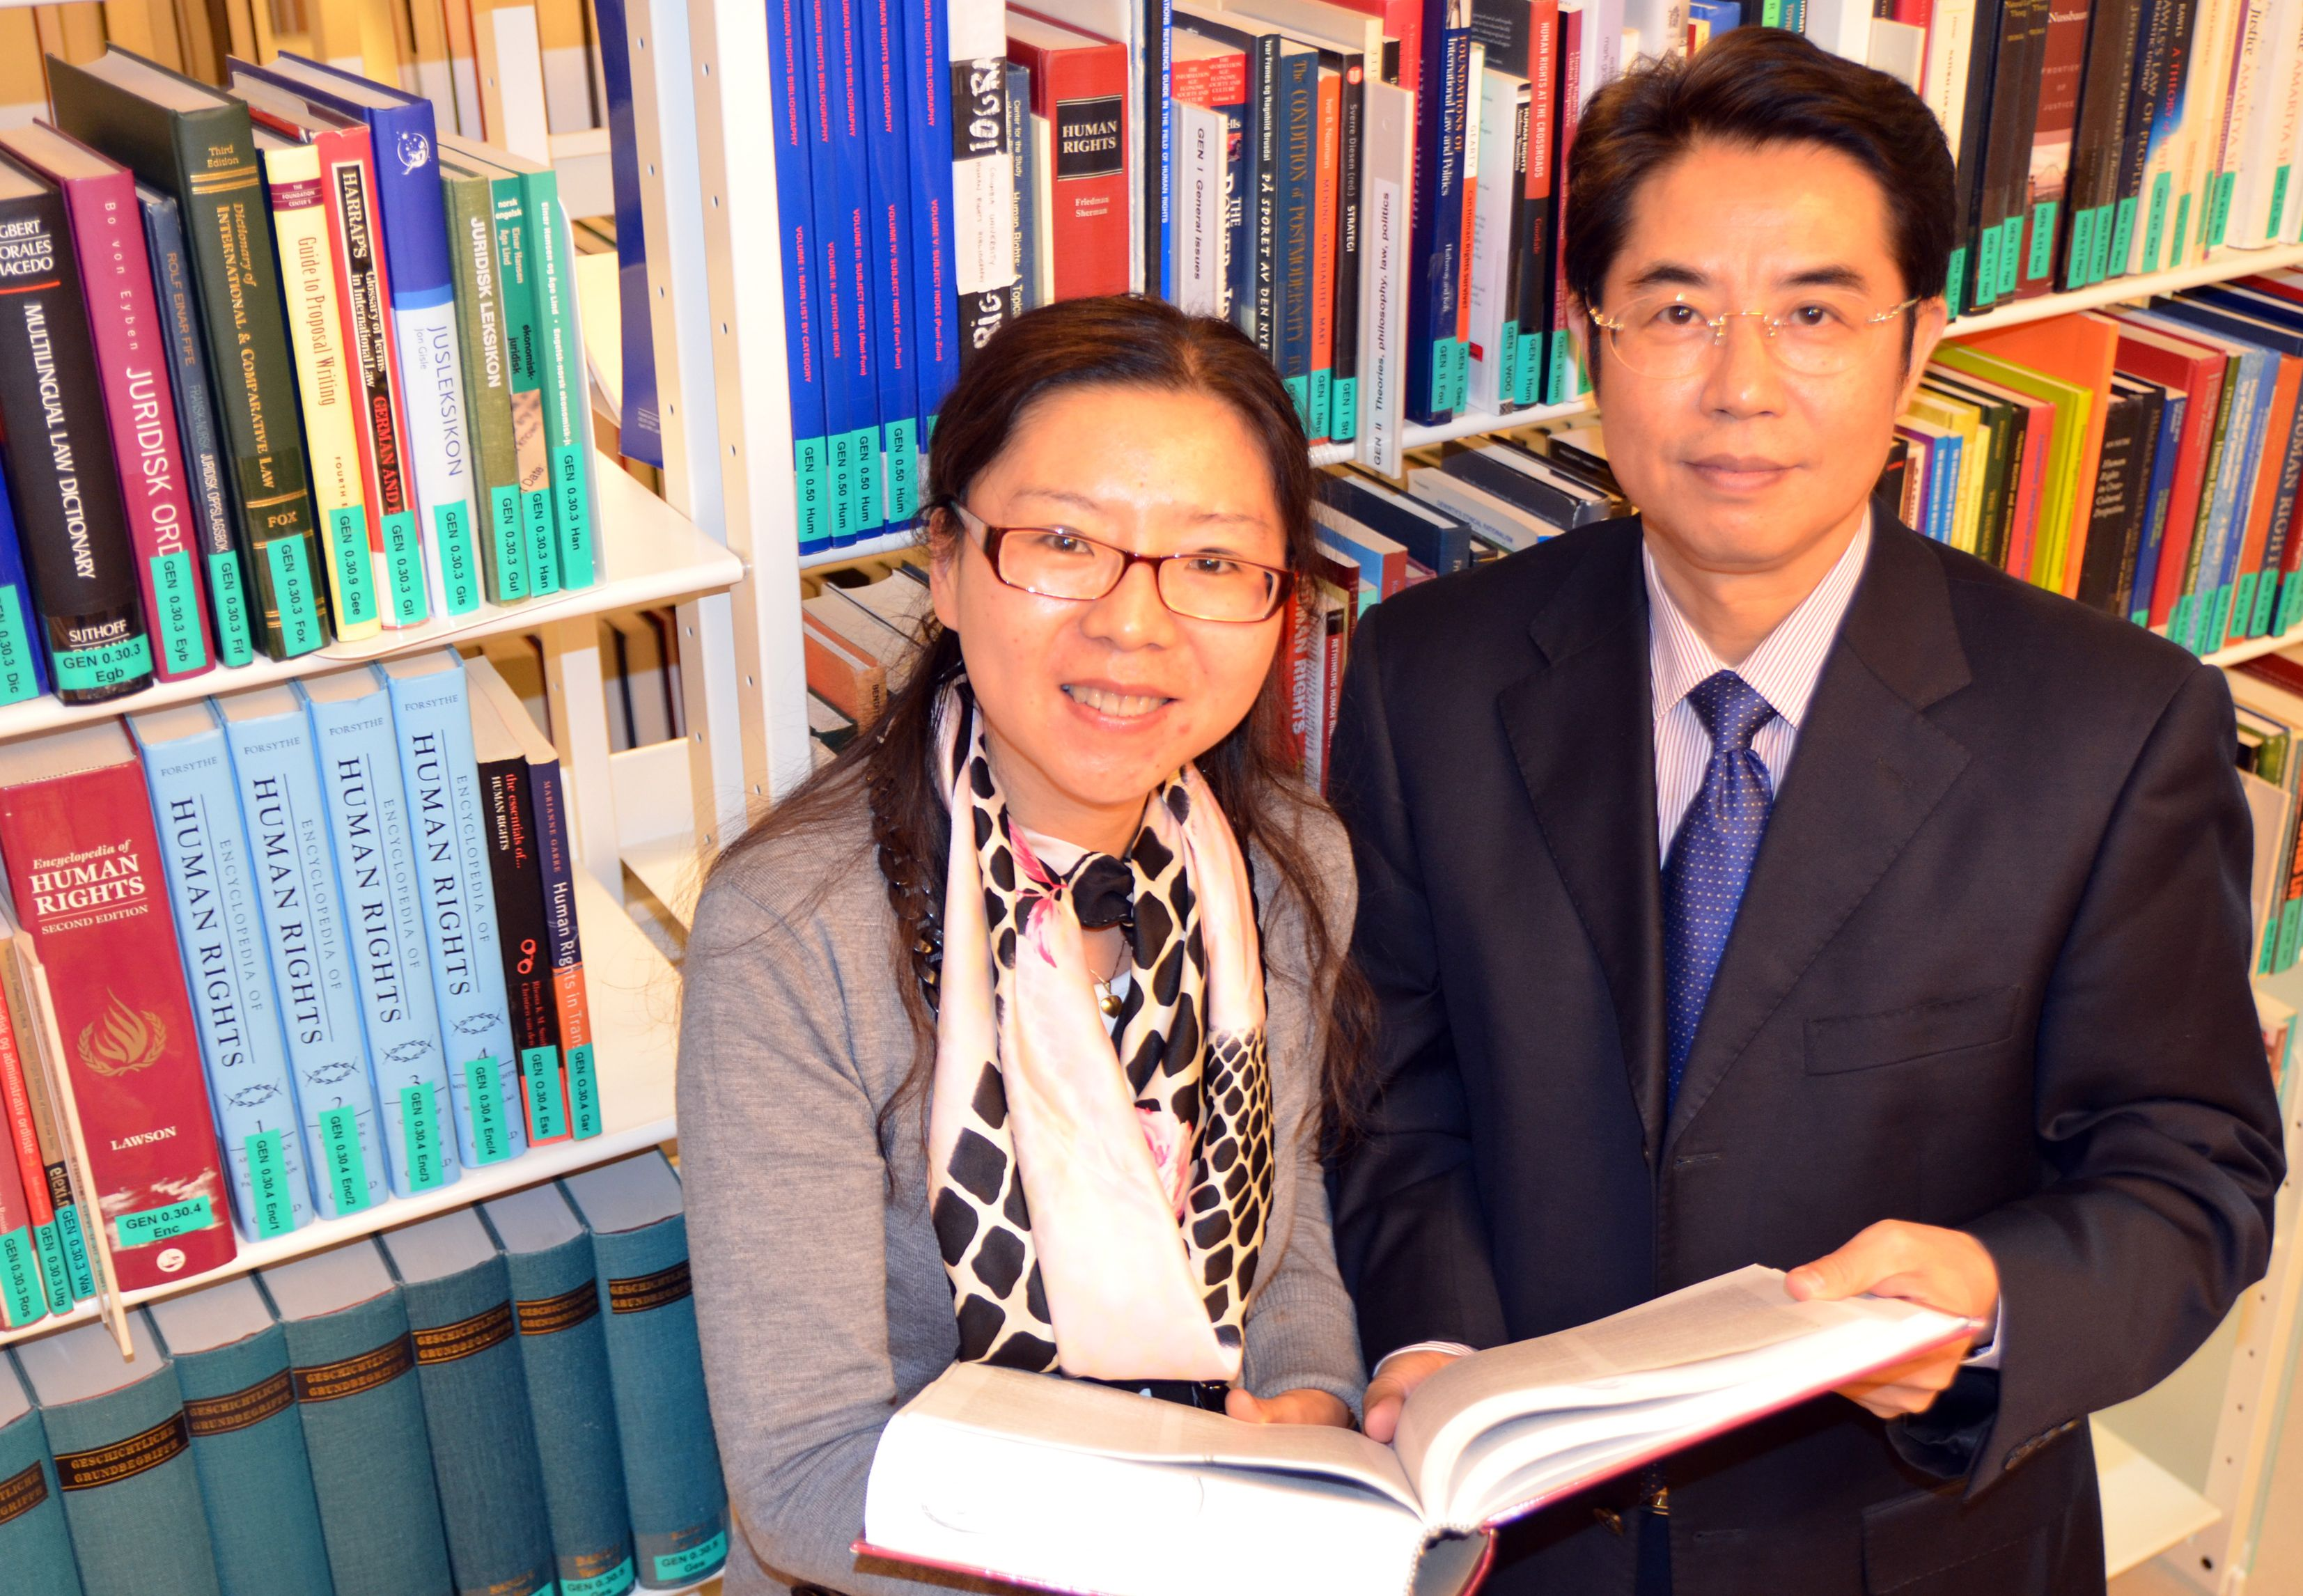 At the NCHR, more than 30 Chinese law experts have been hosted through long-term visiting scholar programmes. In 2013, Professor Yang Songcai from Guangzhou University and Dr. Sun Meng from the China University of Political Science and Law were visiting scholars at the NCHR.